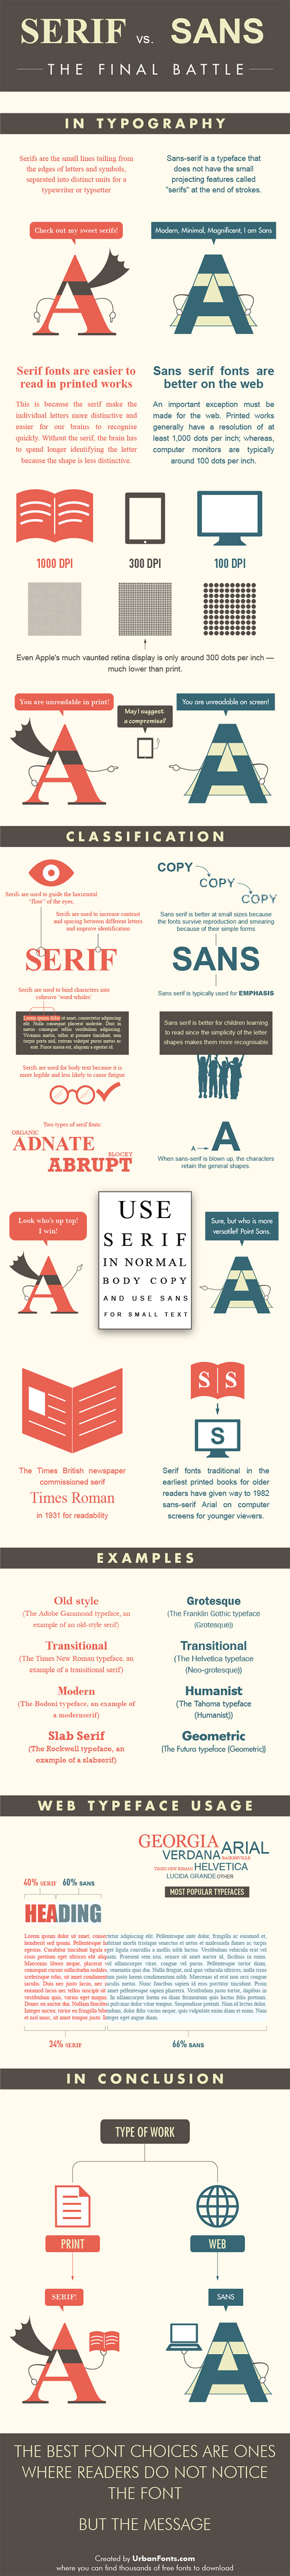 Serif Sans Serif Difference-Infographic